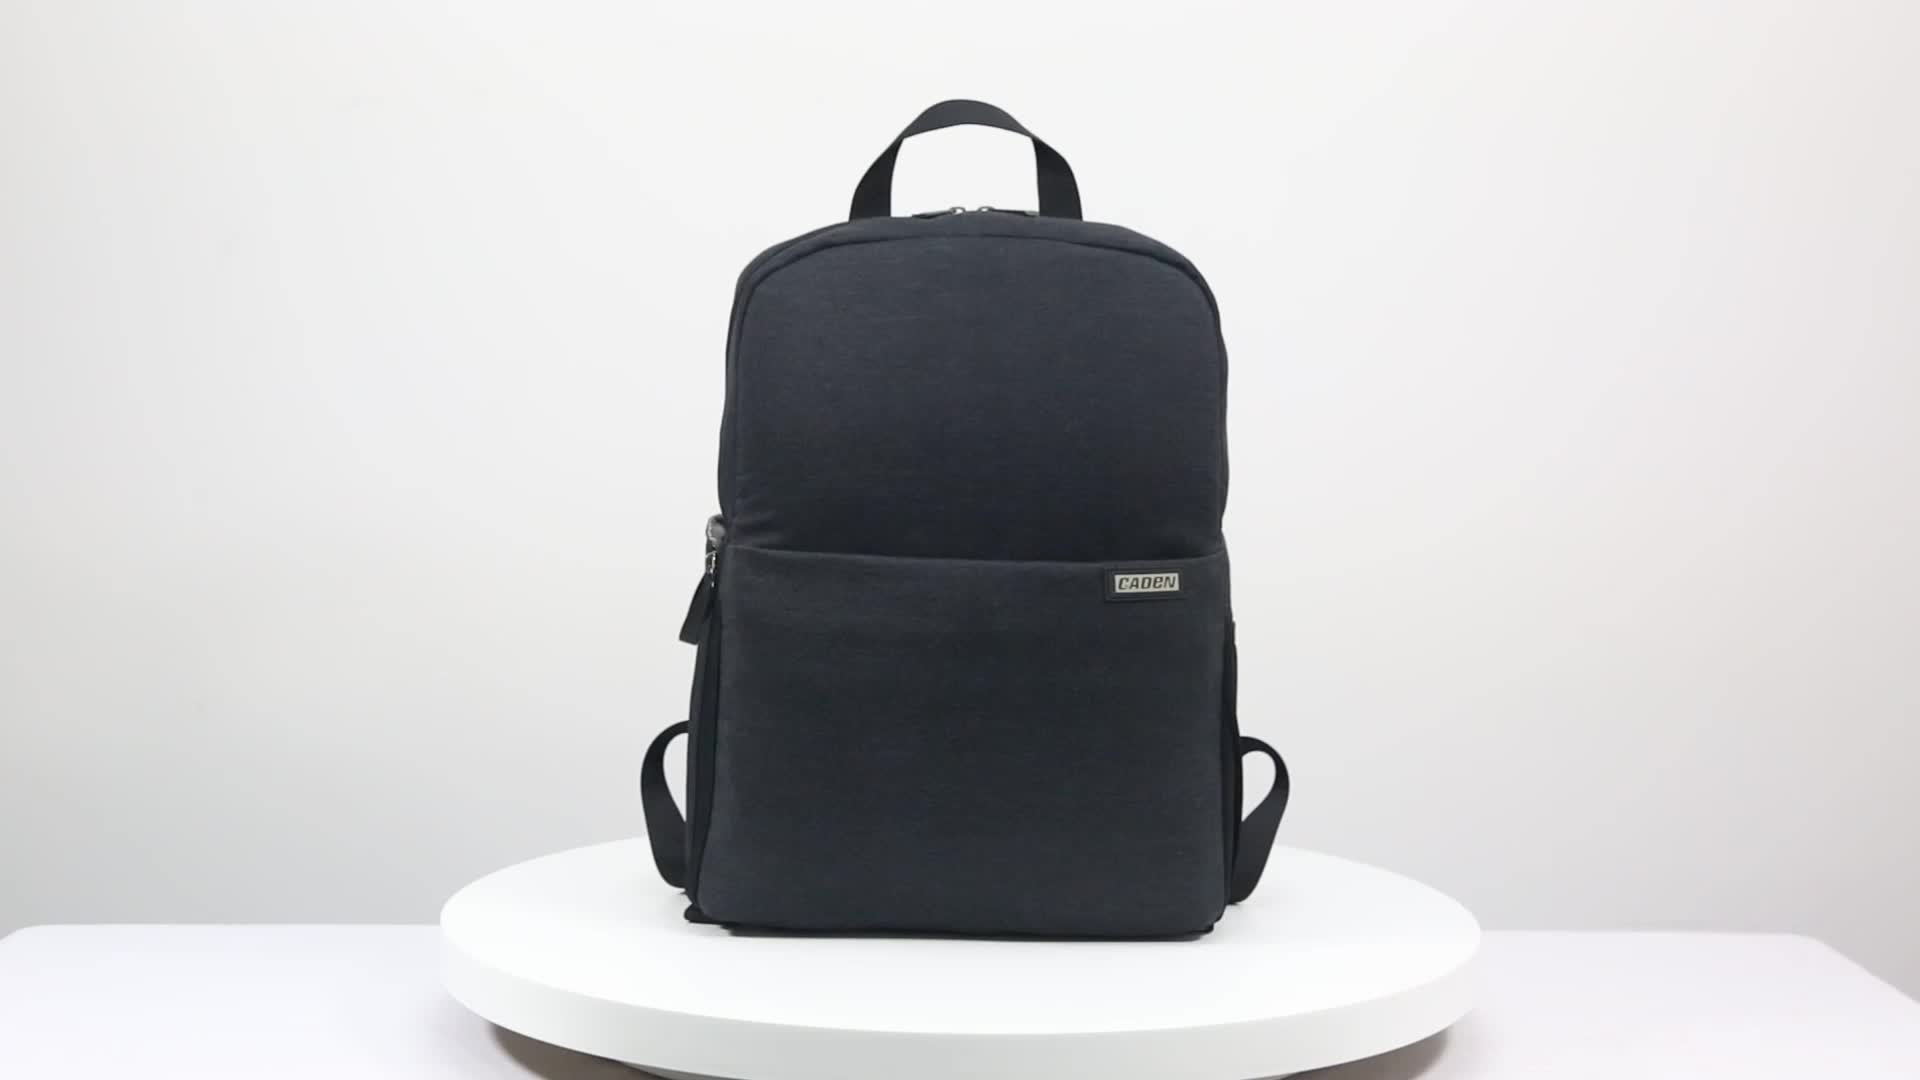 Caden Dslr Waterproof Camera Laptop Backpack Pouch Video Bag  For Photography